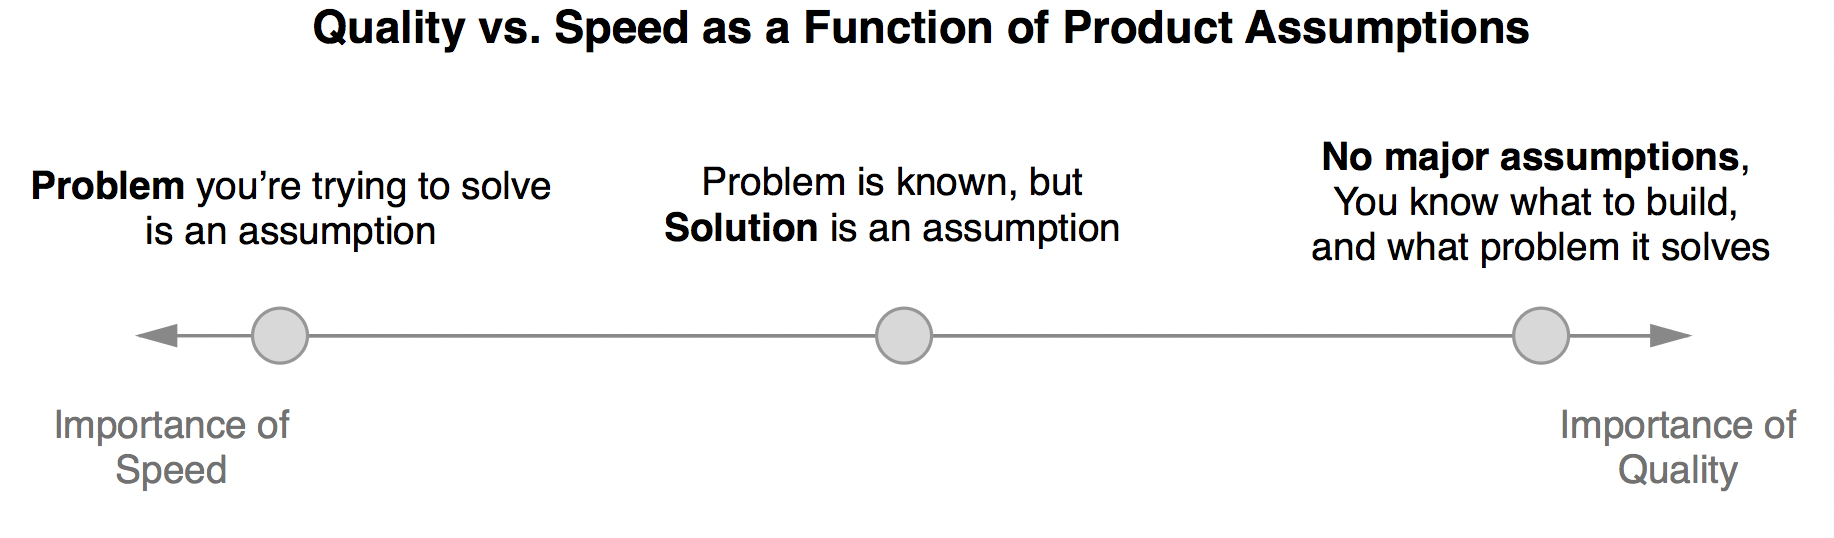 Ruthless Prioritization - The Black Box of Product Management